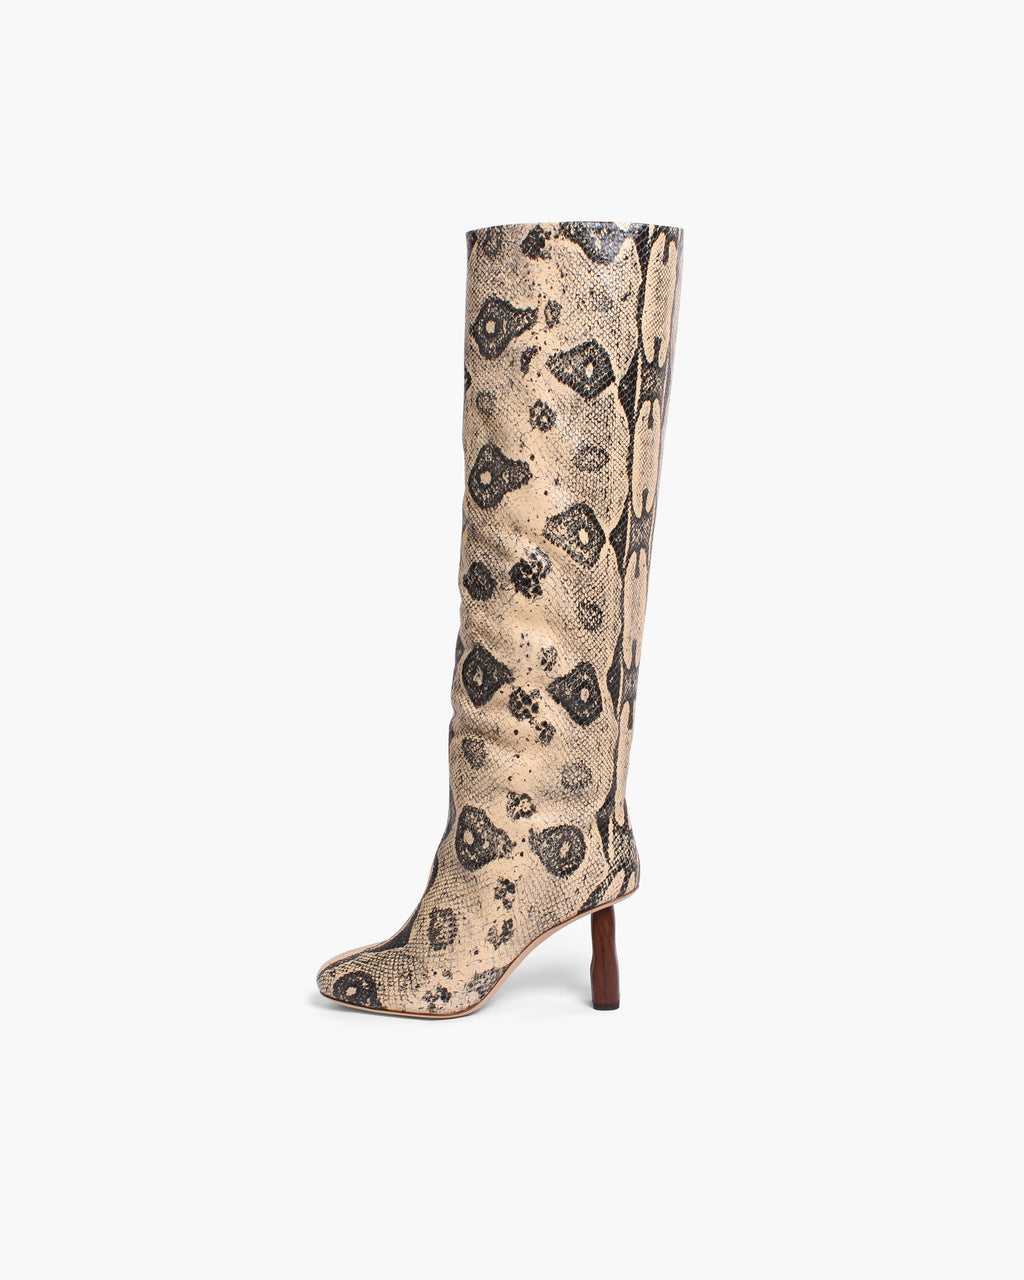 Allegra Boots Leather Print Boa Beige - WEBSHOP EXCLUSIVE - ADDITIONAL 10% OFF SALE PRICE